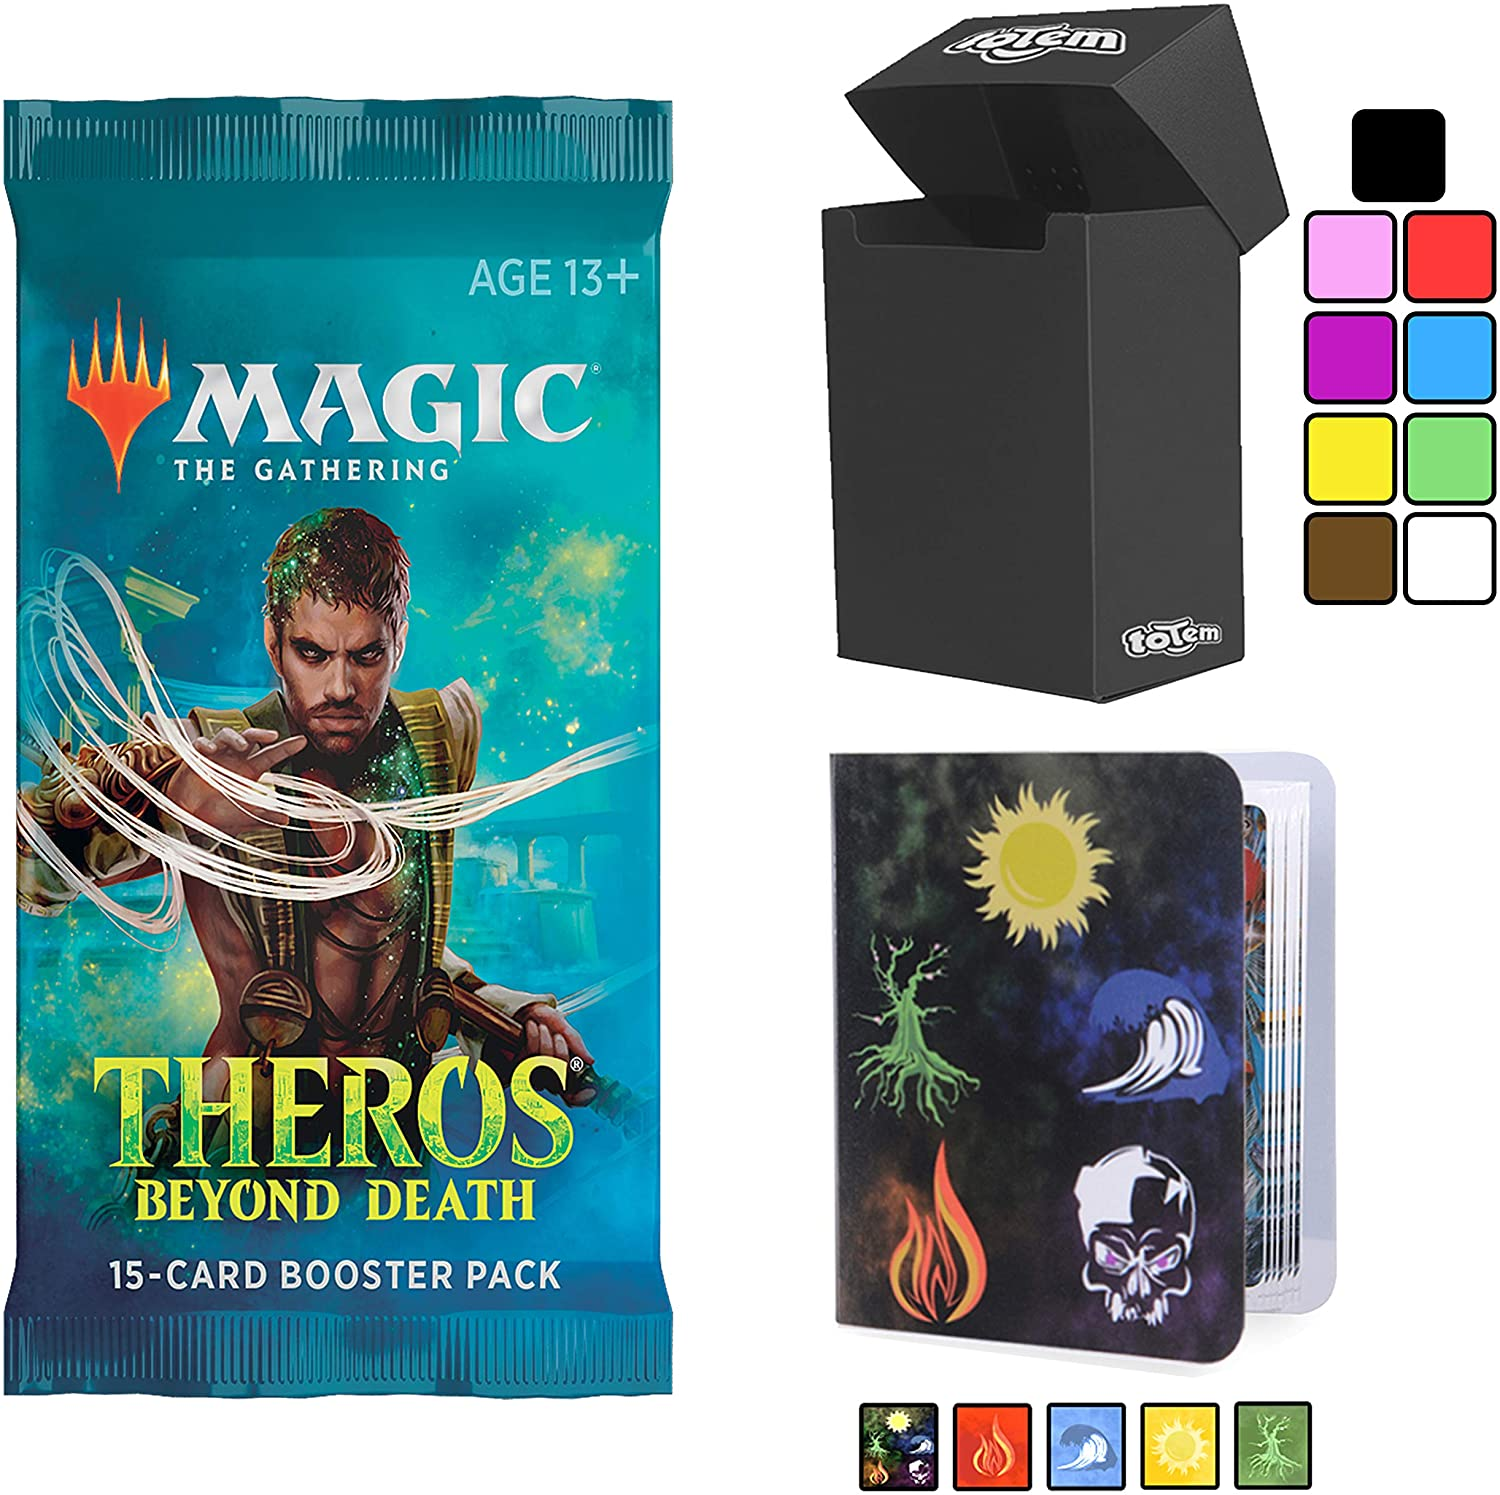 Totem World Theros Beyond Death Booster Pack with a Totem Inspired Mini Binder Collectors Album and Deck Box